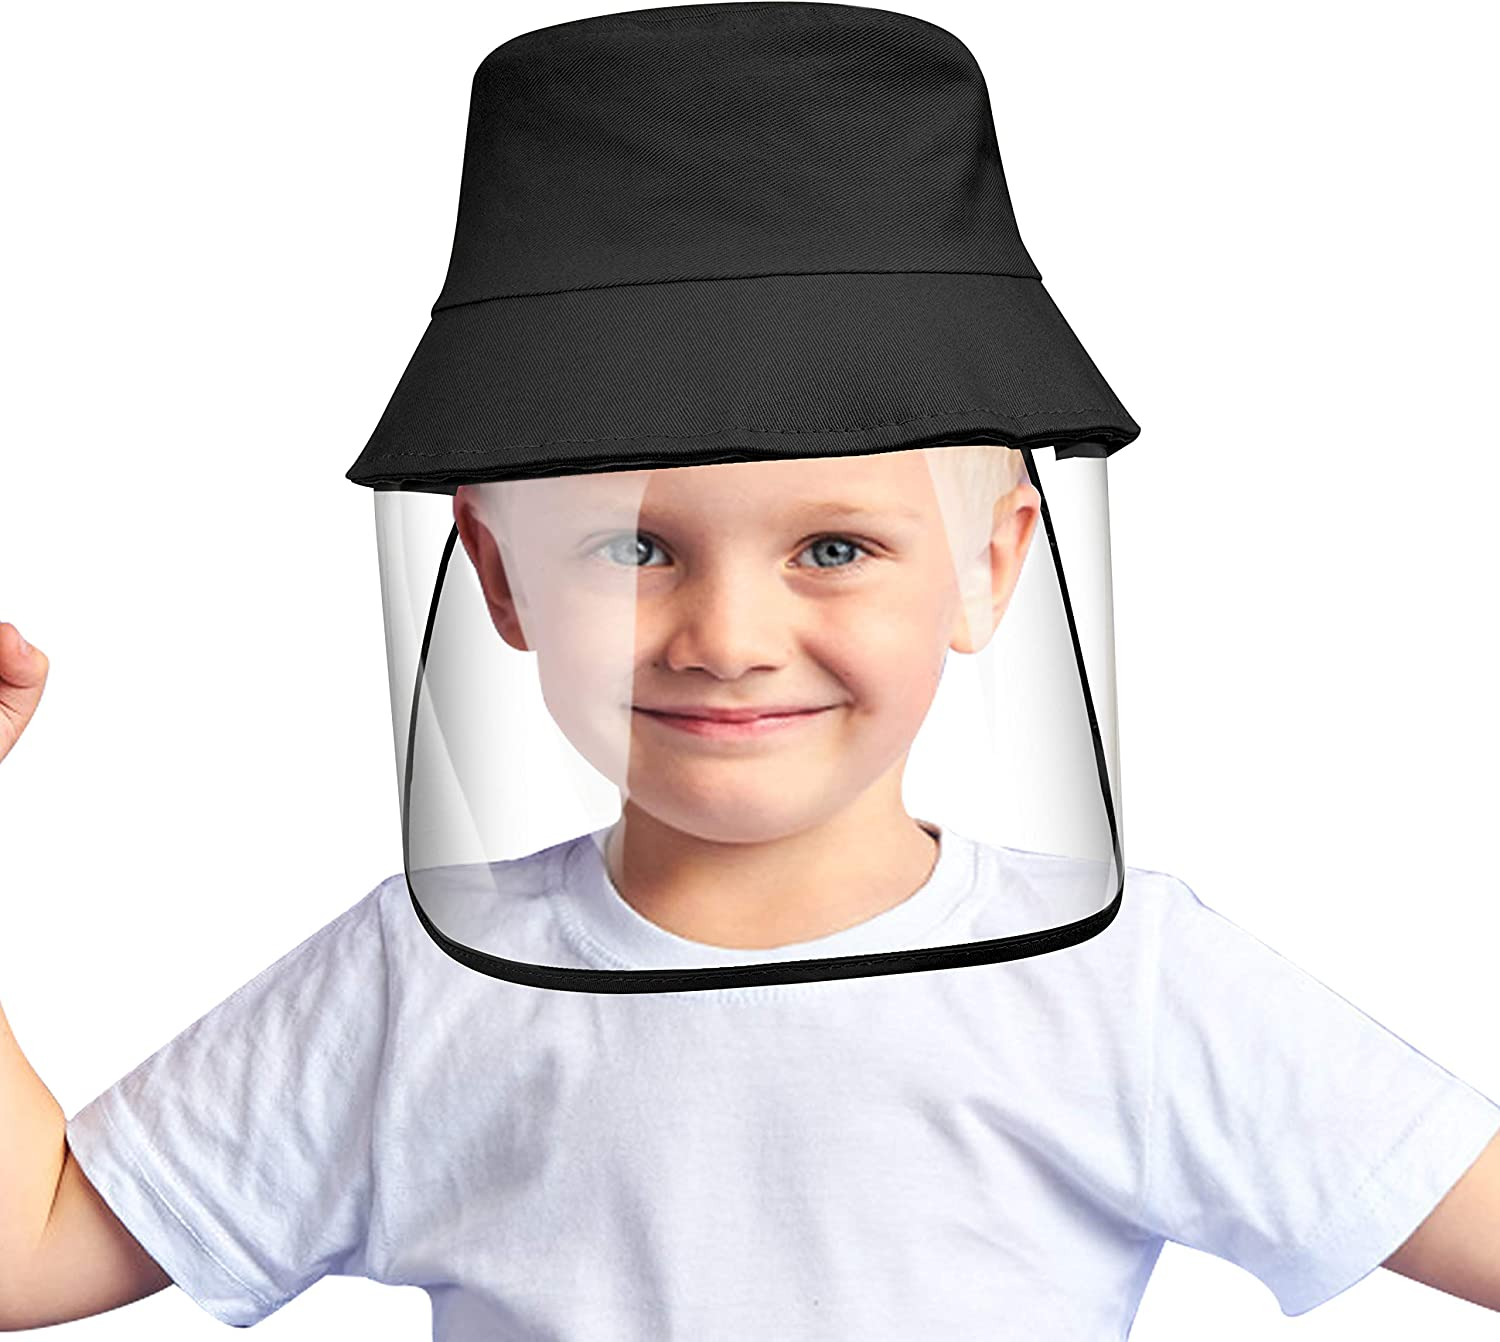 Protective Sun Hat, Anti Fog Dustproof Cap Protective Fisherman Hats, Removable Protective Hat for Adult & Kids